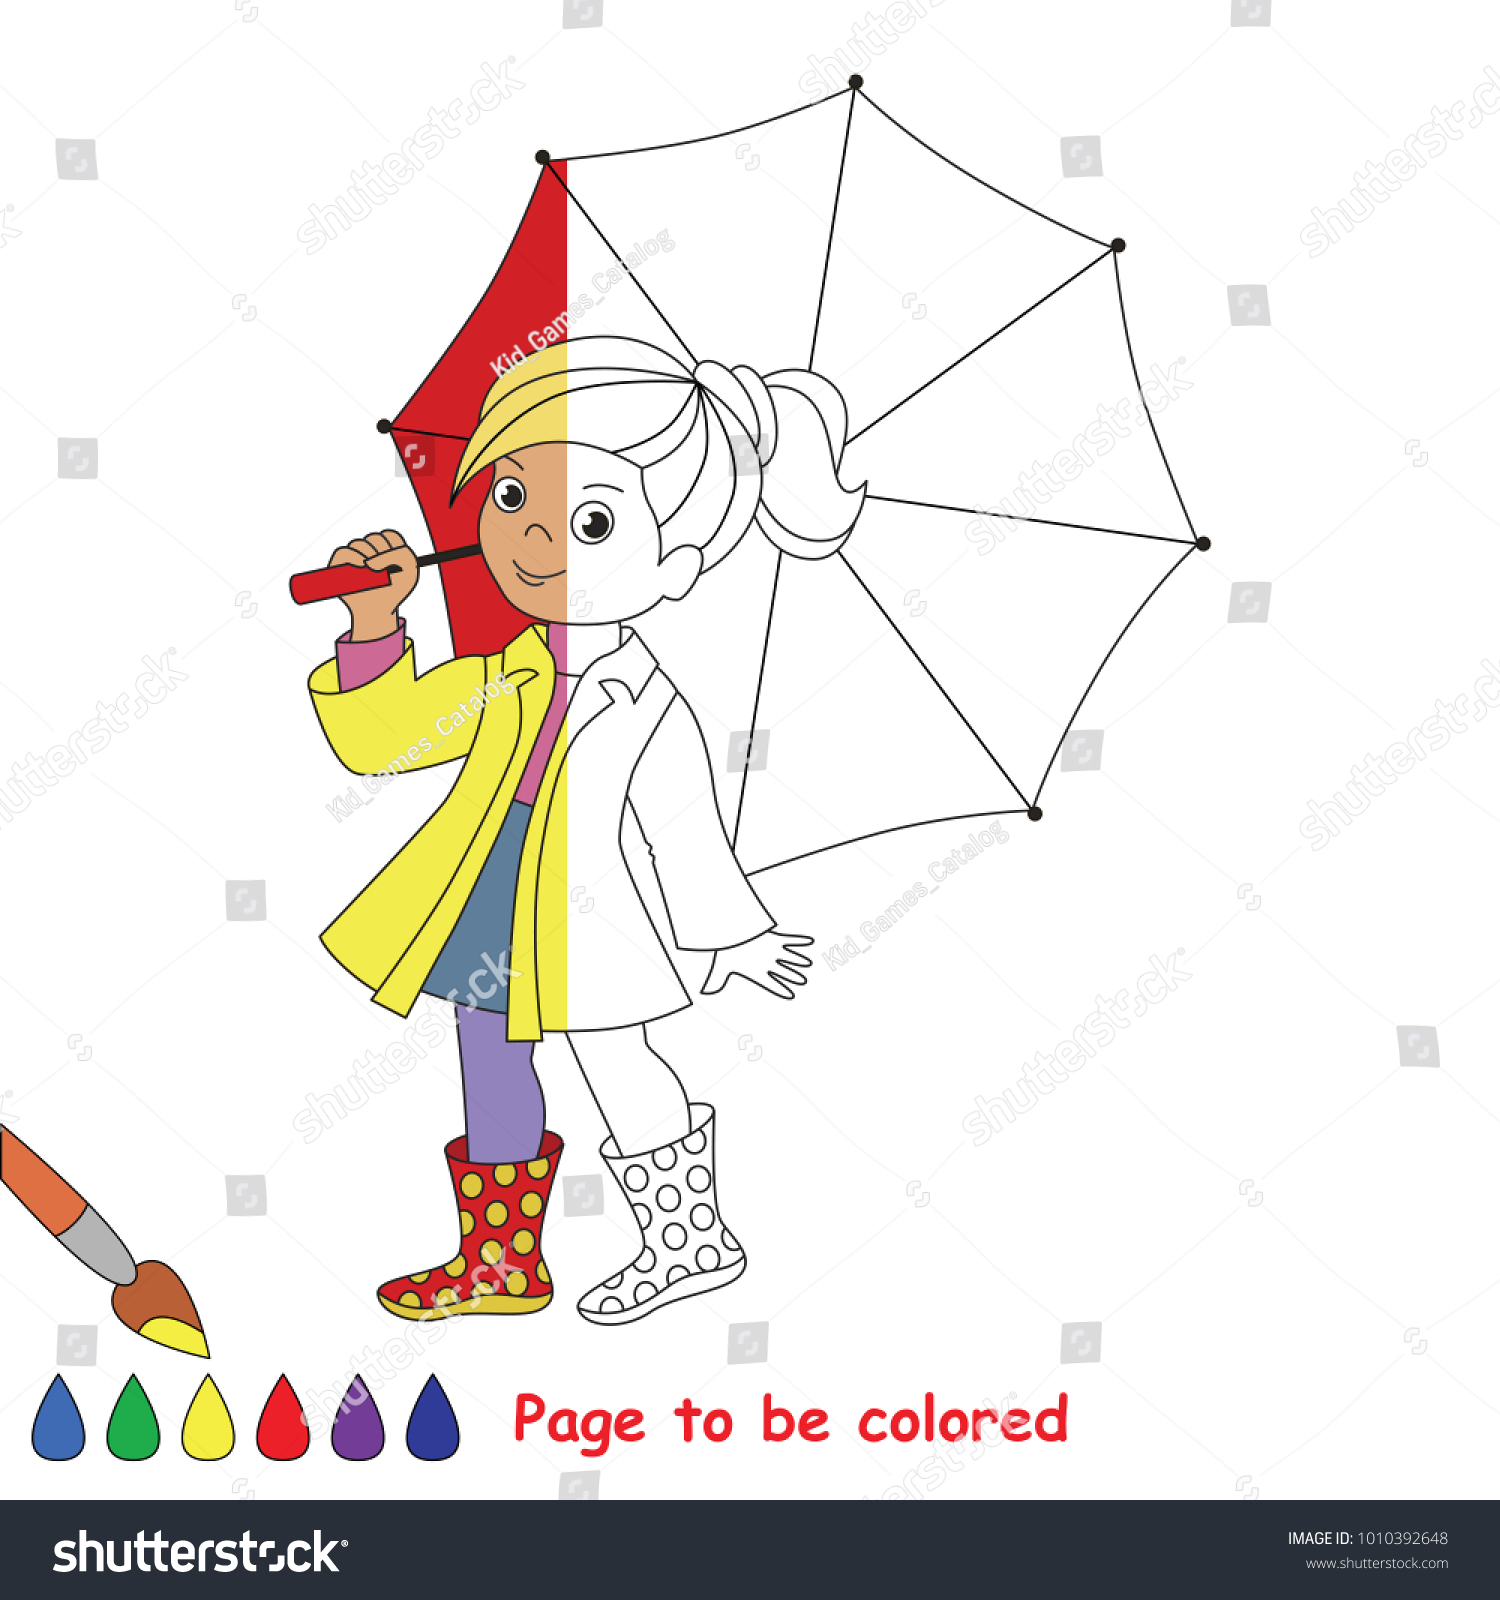 Cute Small Girl With Red Umbrella The Coloring Book To Educate Preschool Kids Easy